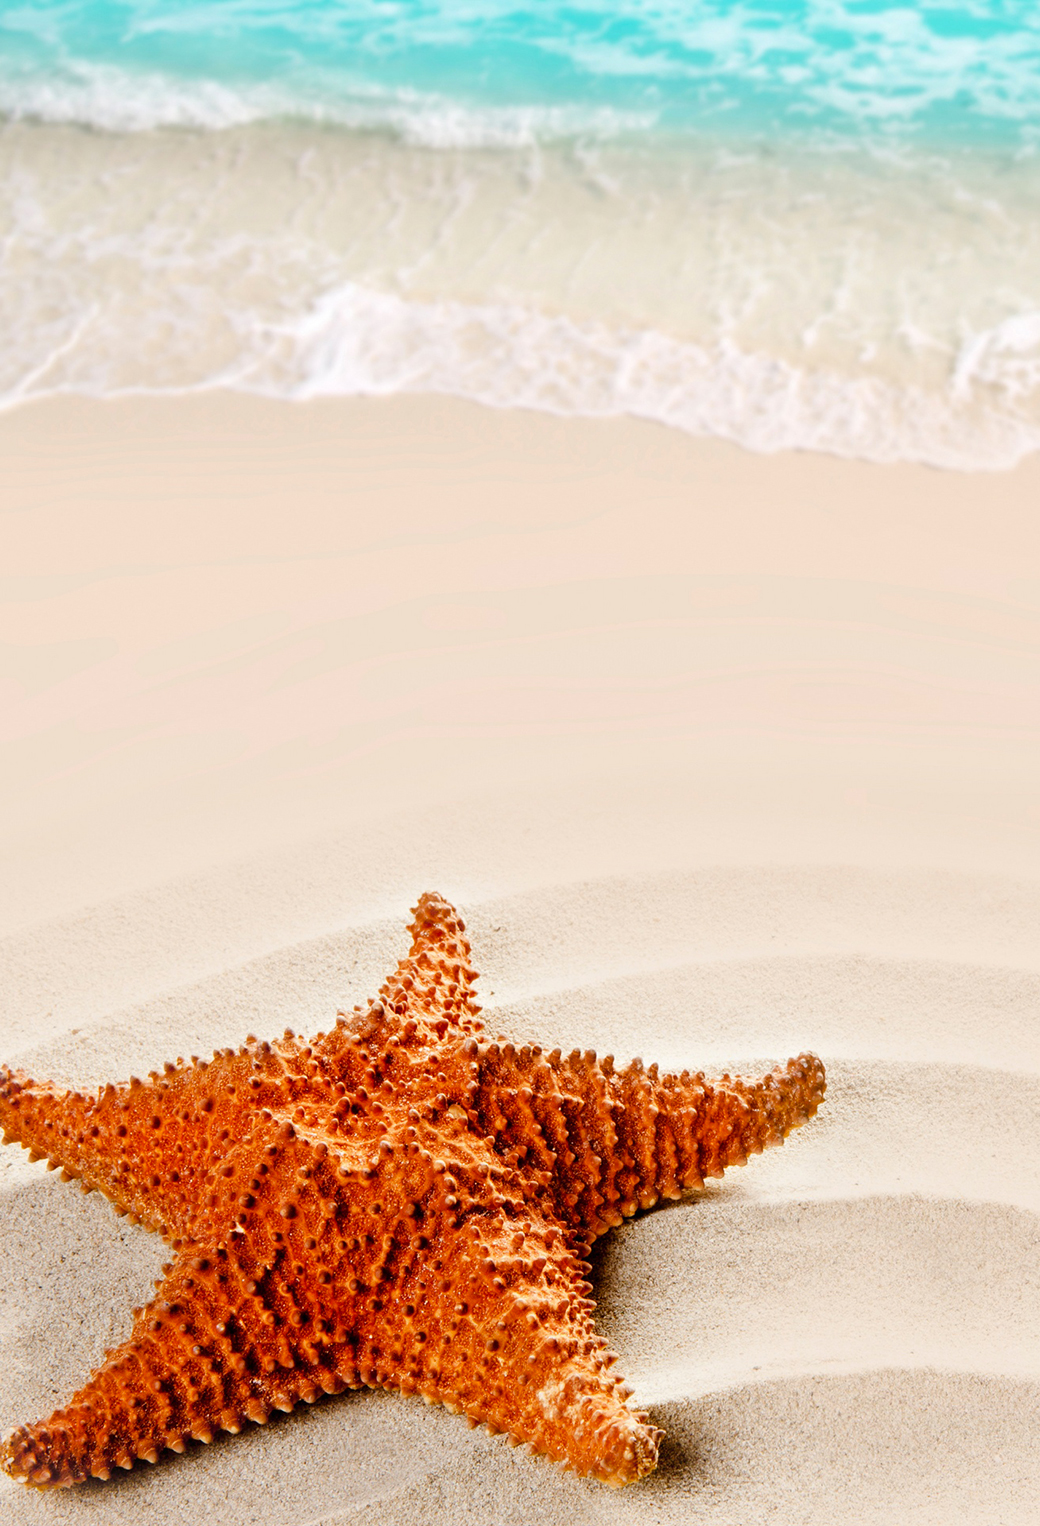 Starfish on the Beach 3Wallpapers iPhone Parallax Starfish on the Beach